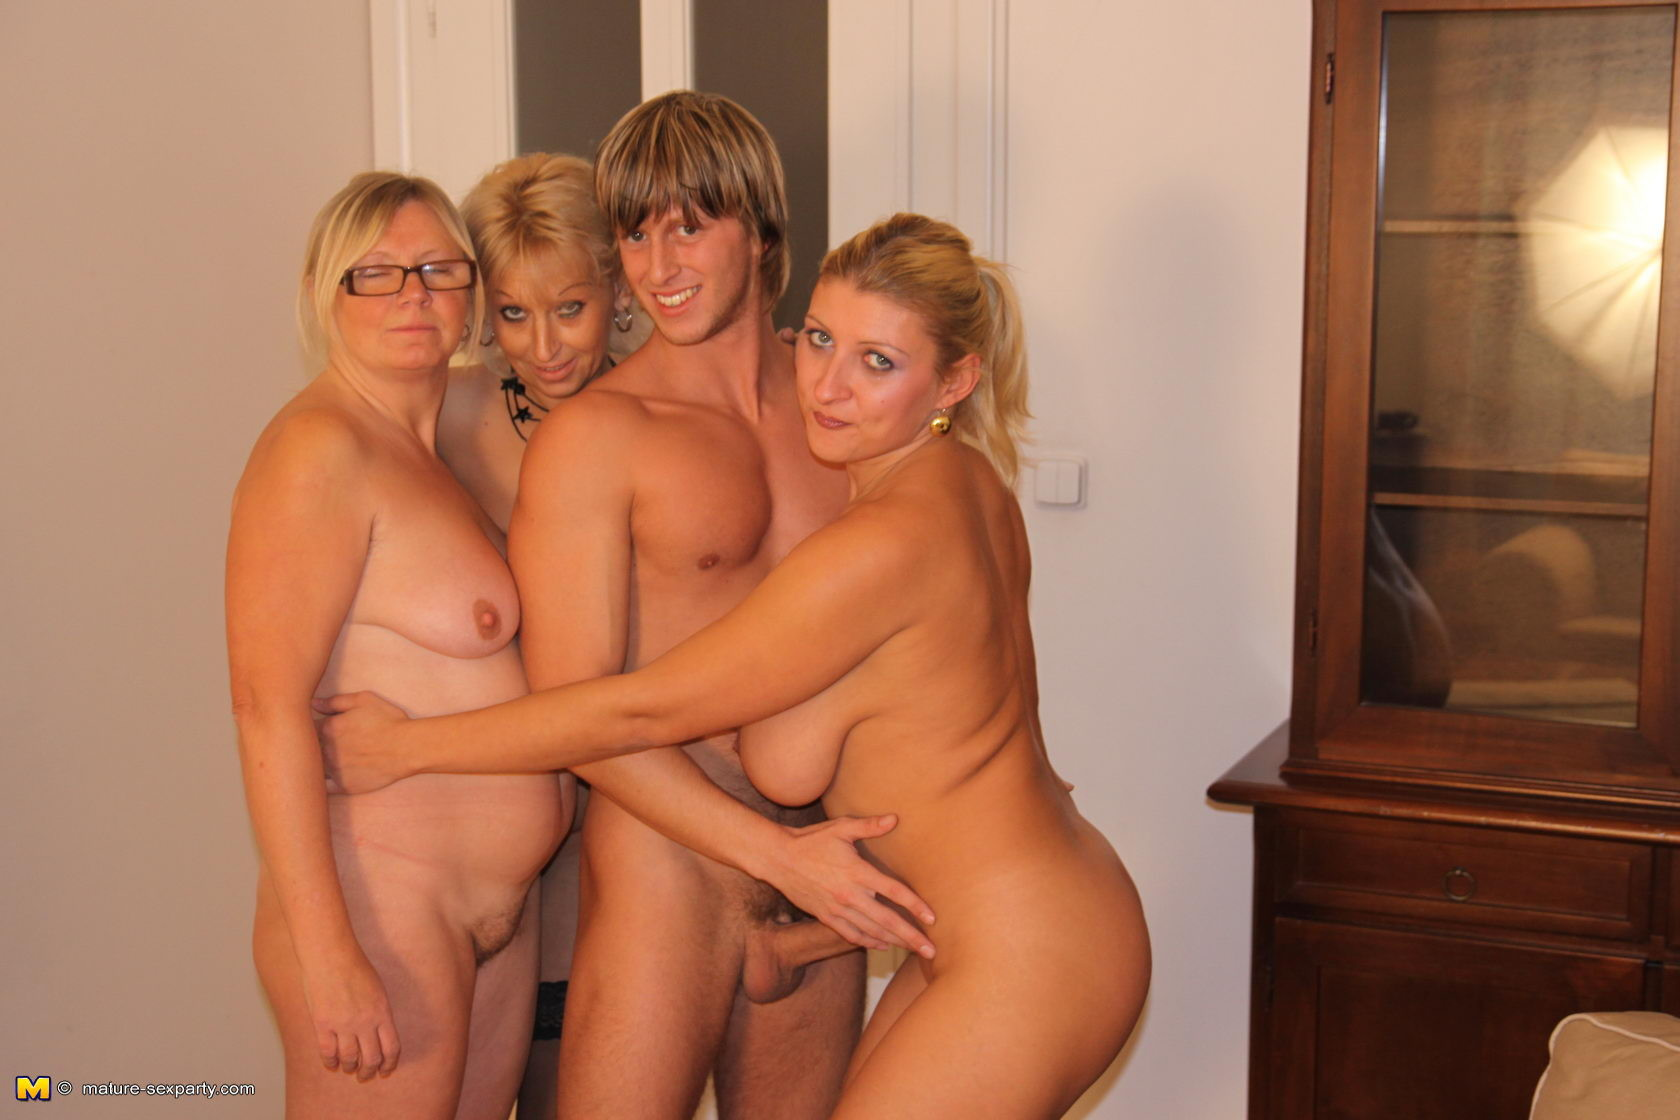 young family nudist nude